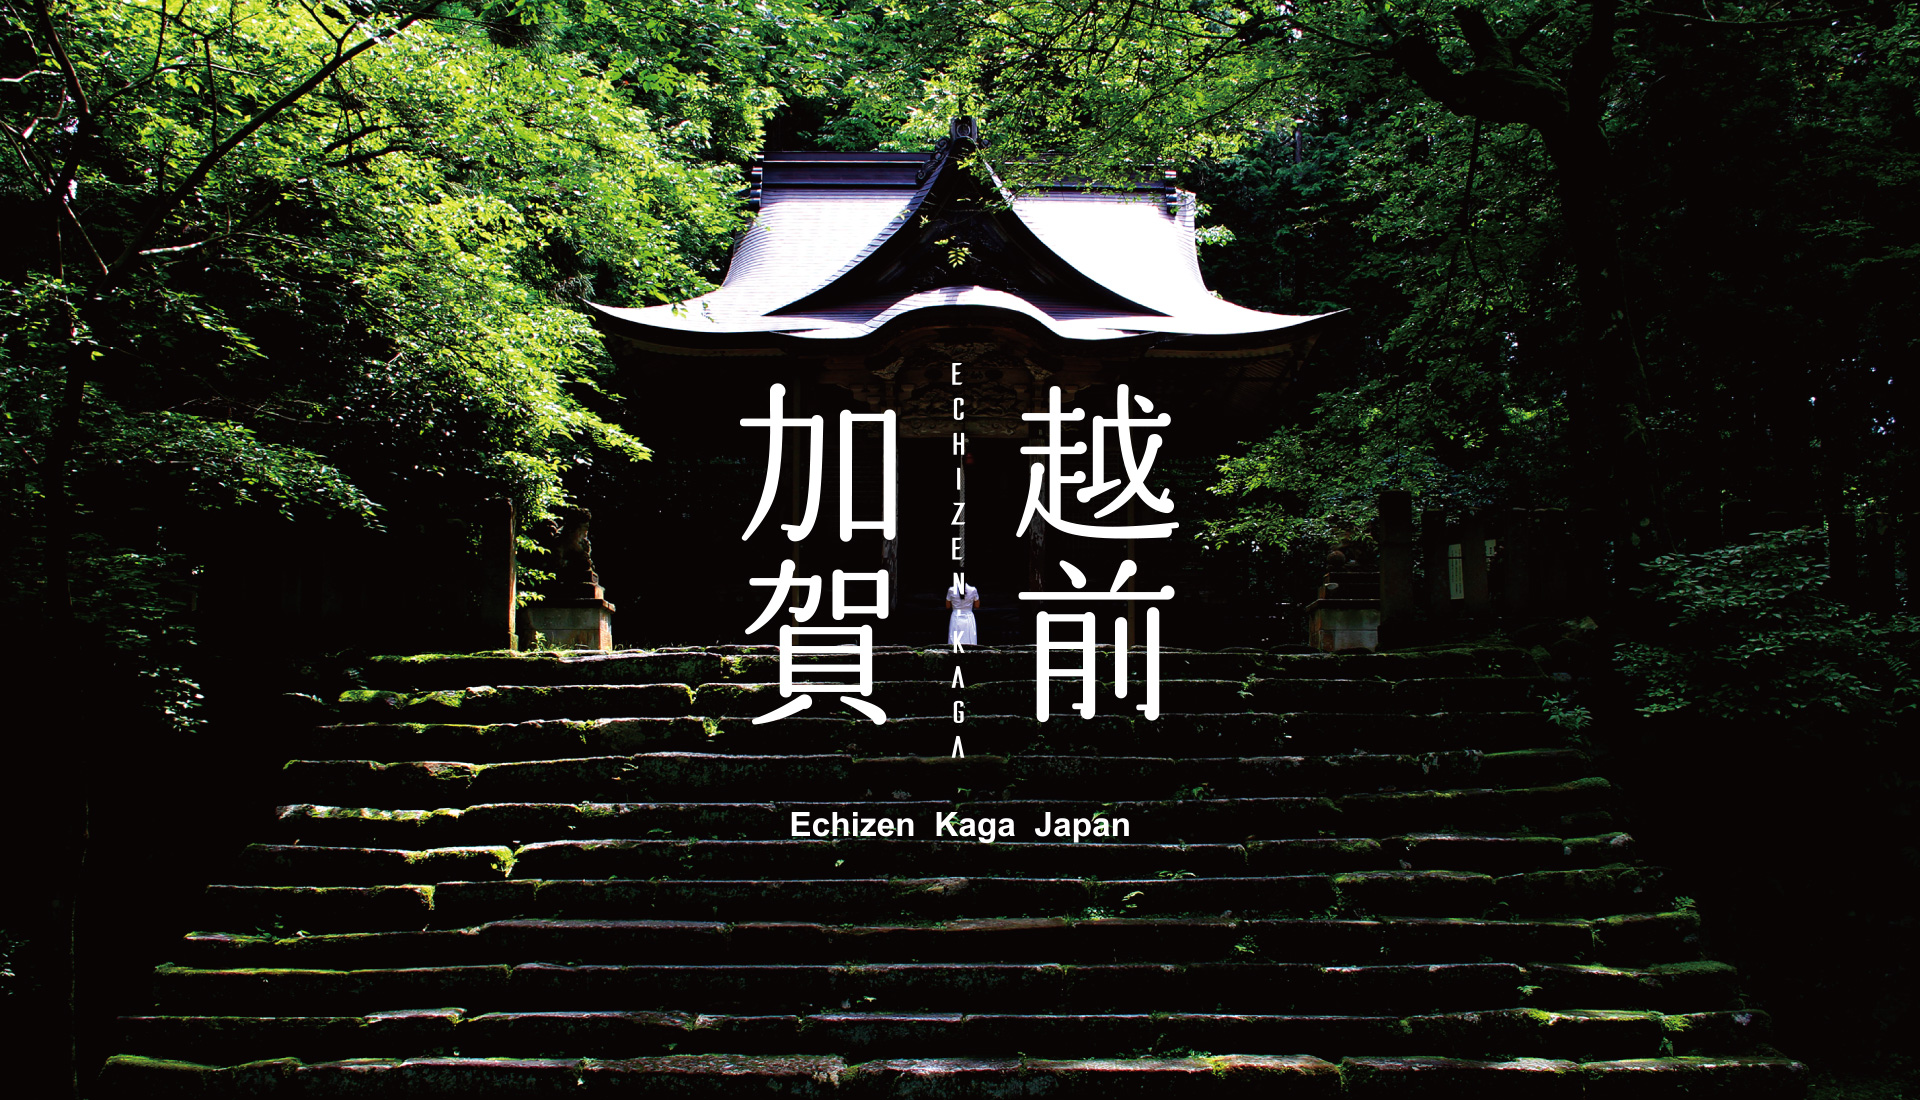 ECHIZEN KAGA JAPAN